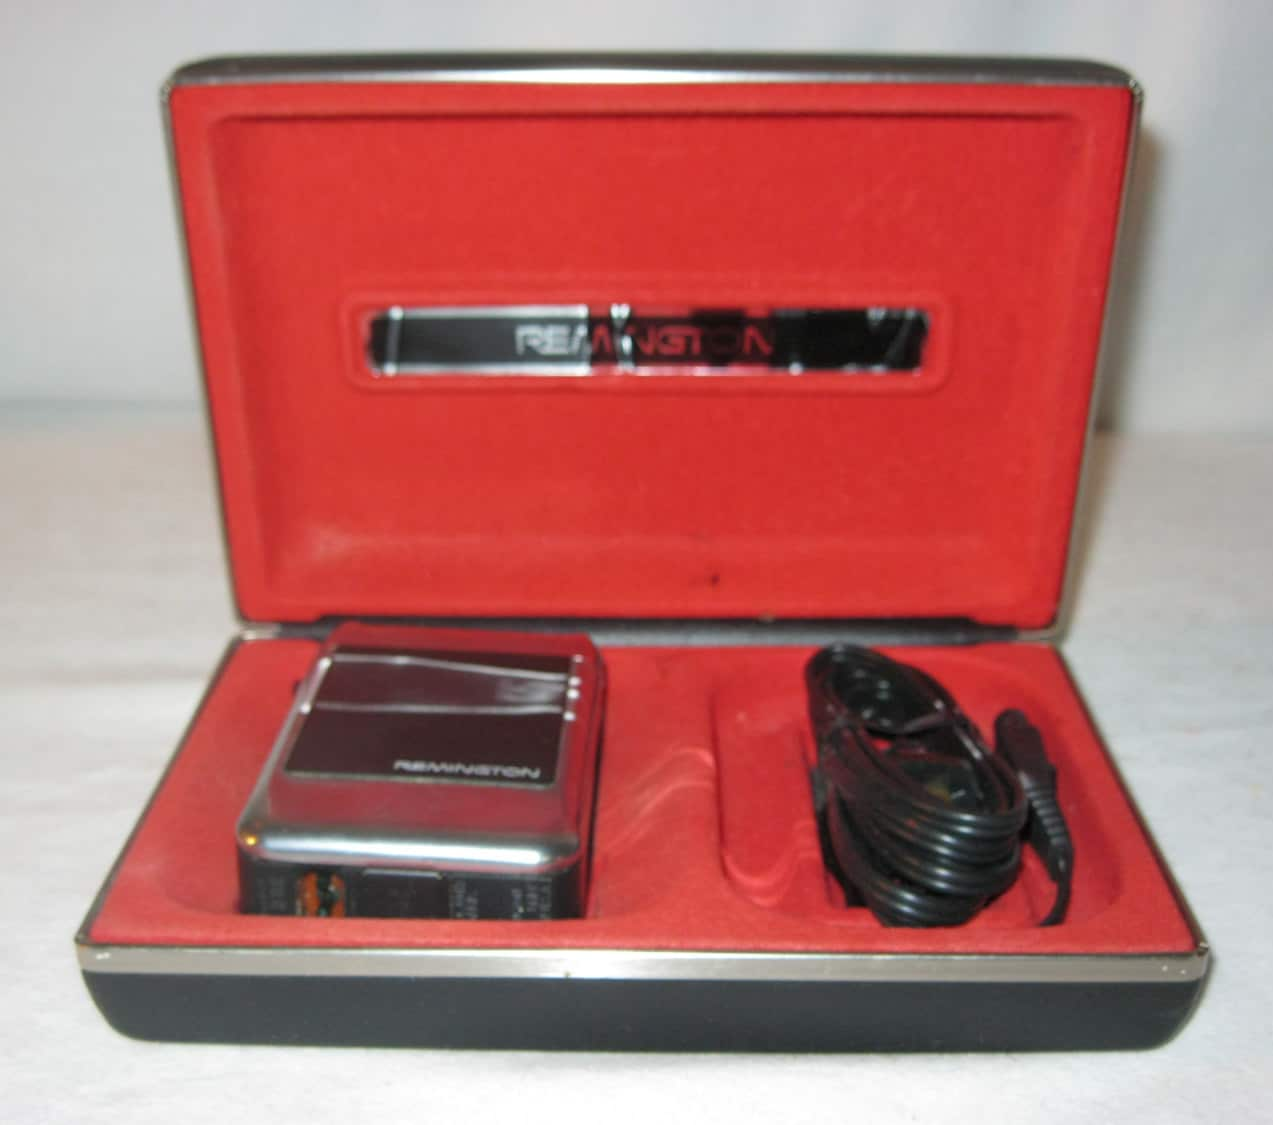 Collectible Kobler Electric Shaver with Travel Case